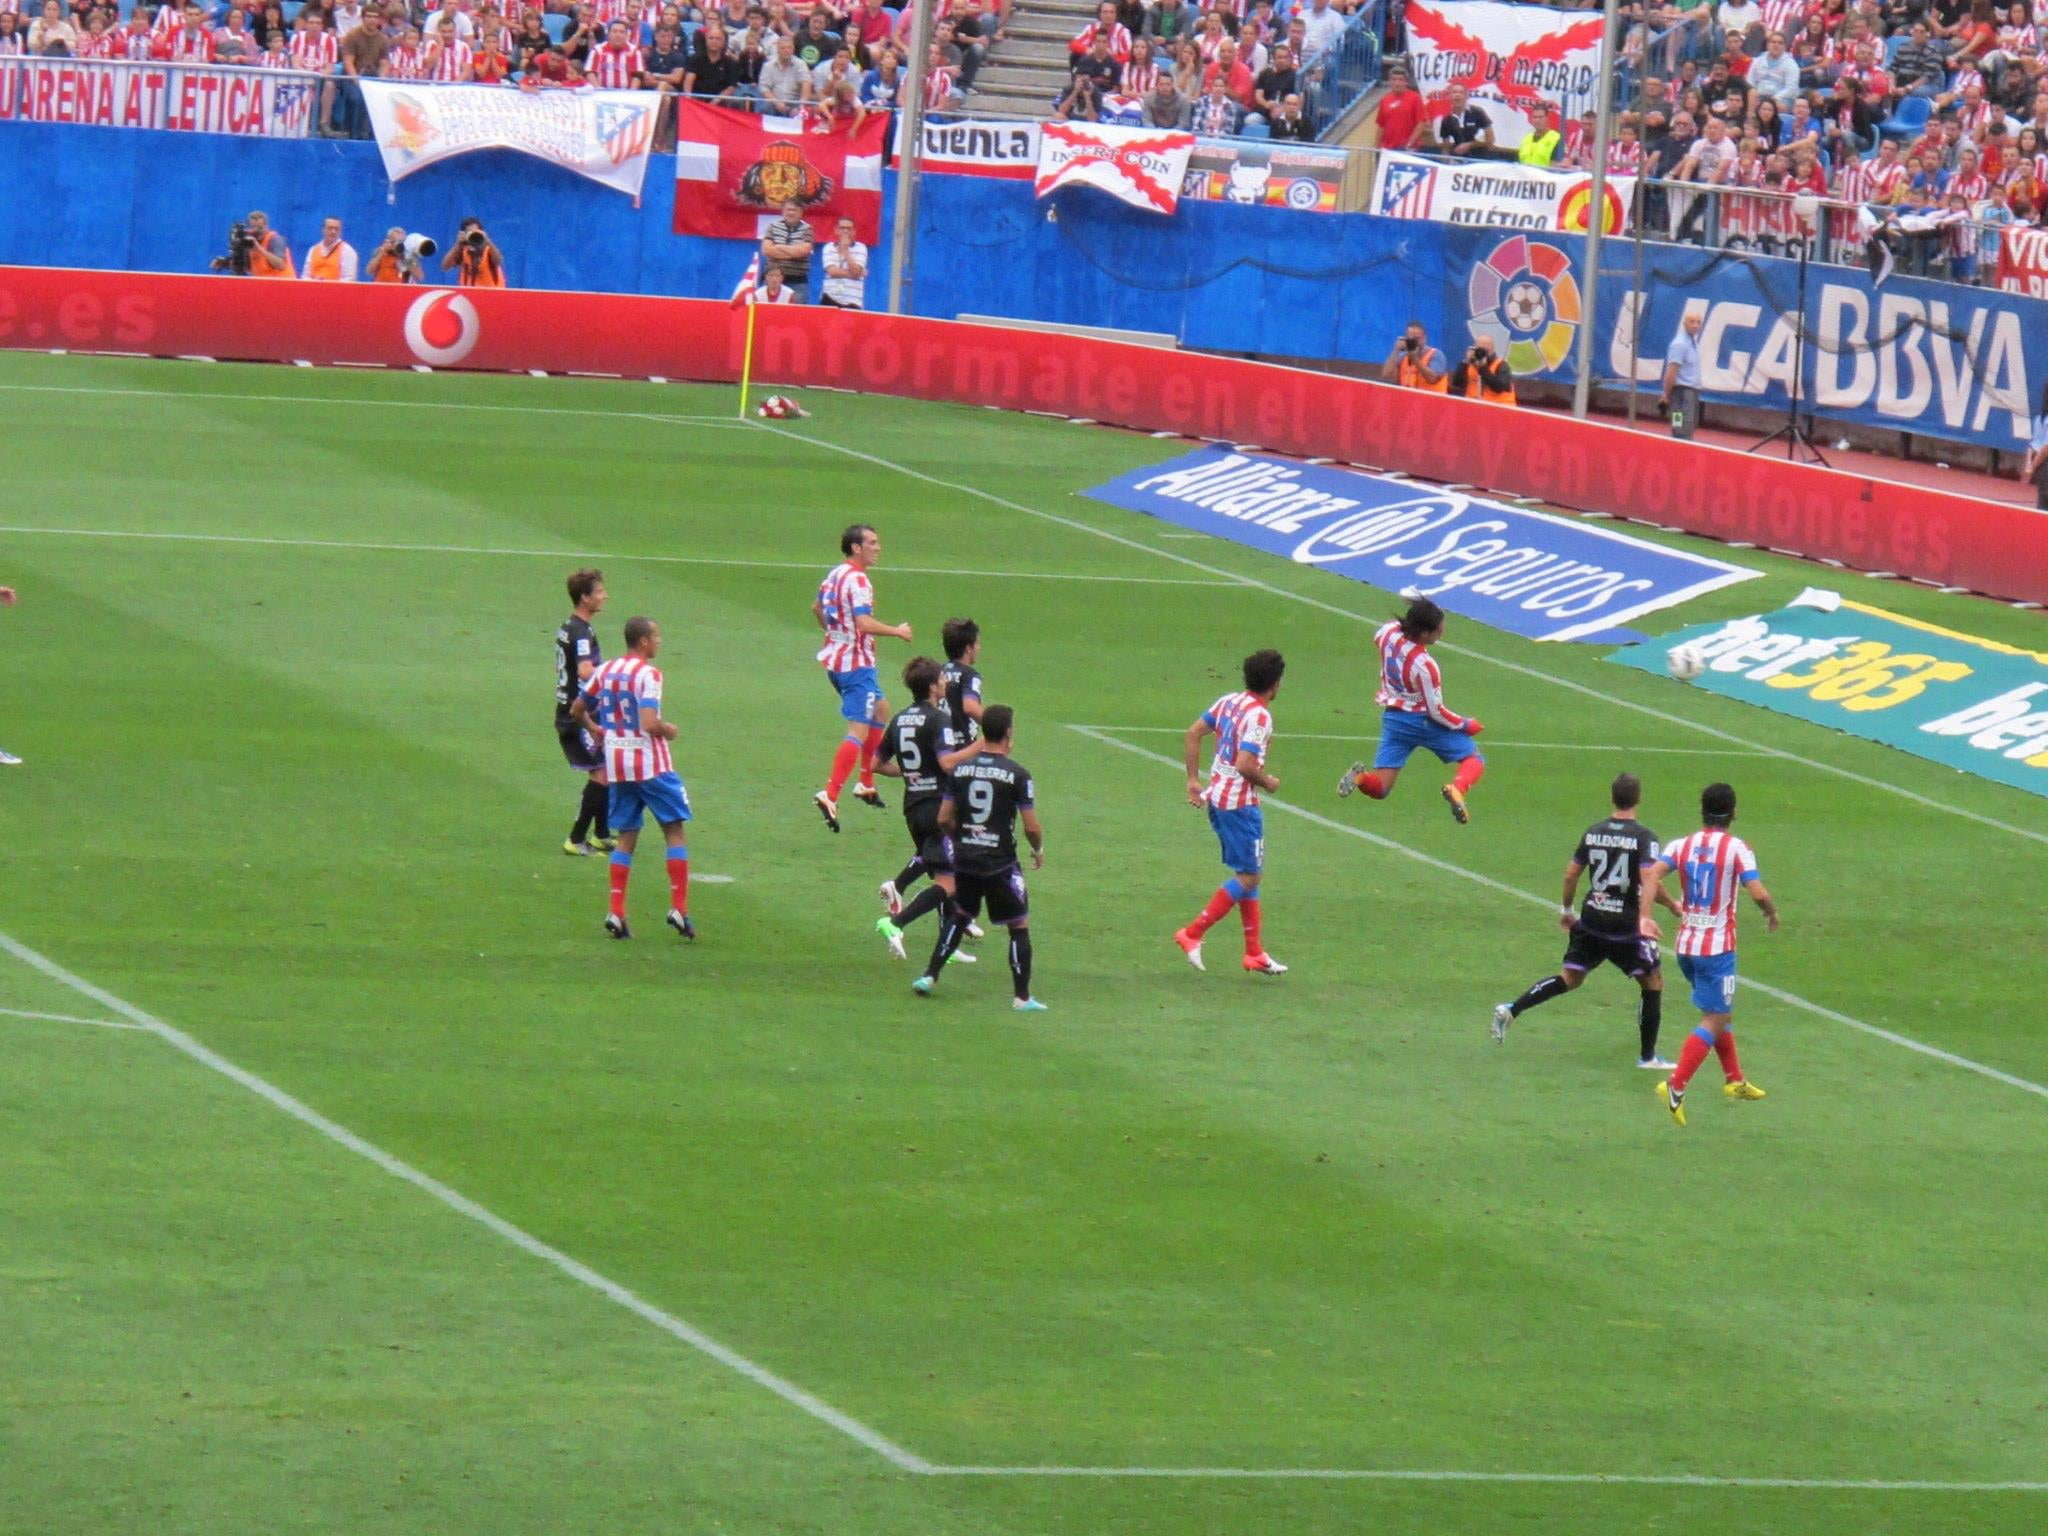 Fútbol canadiense en Estadio Vicente Calderón